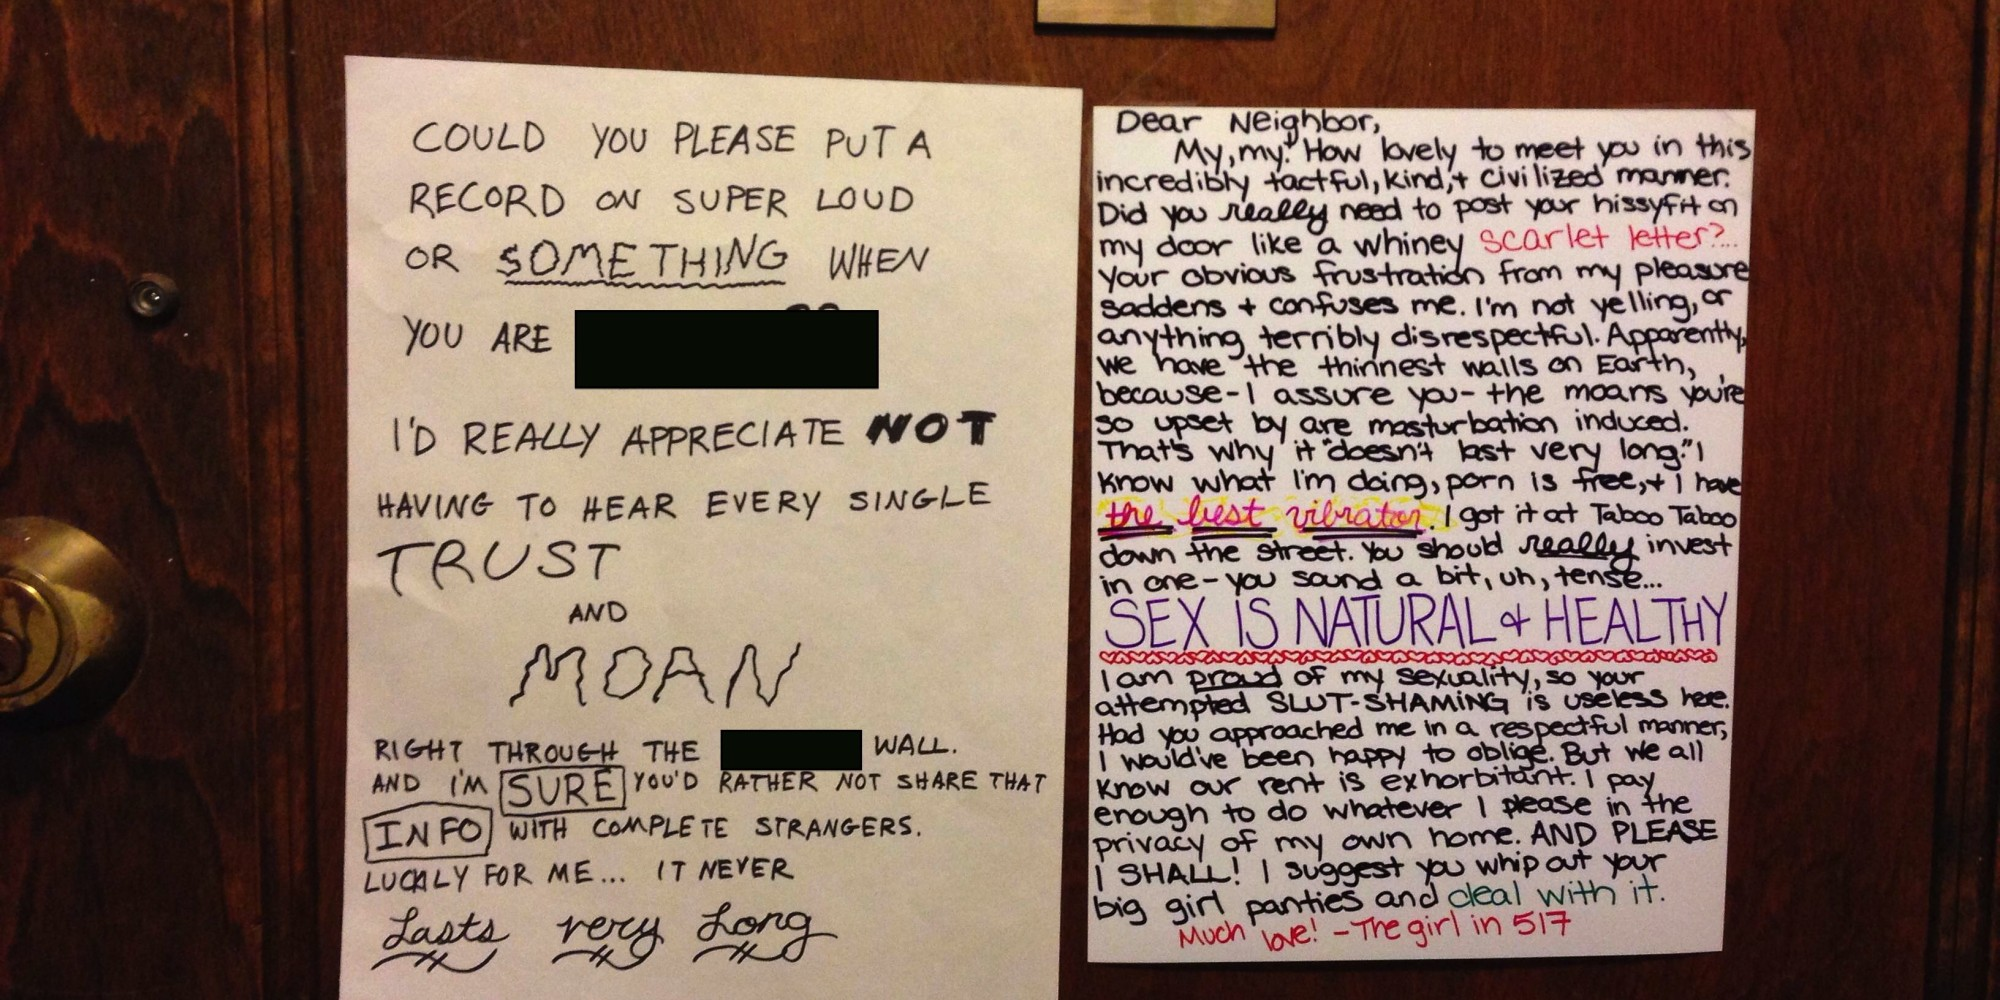 Neighbor sex loud